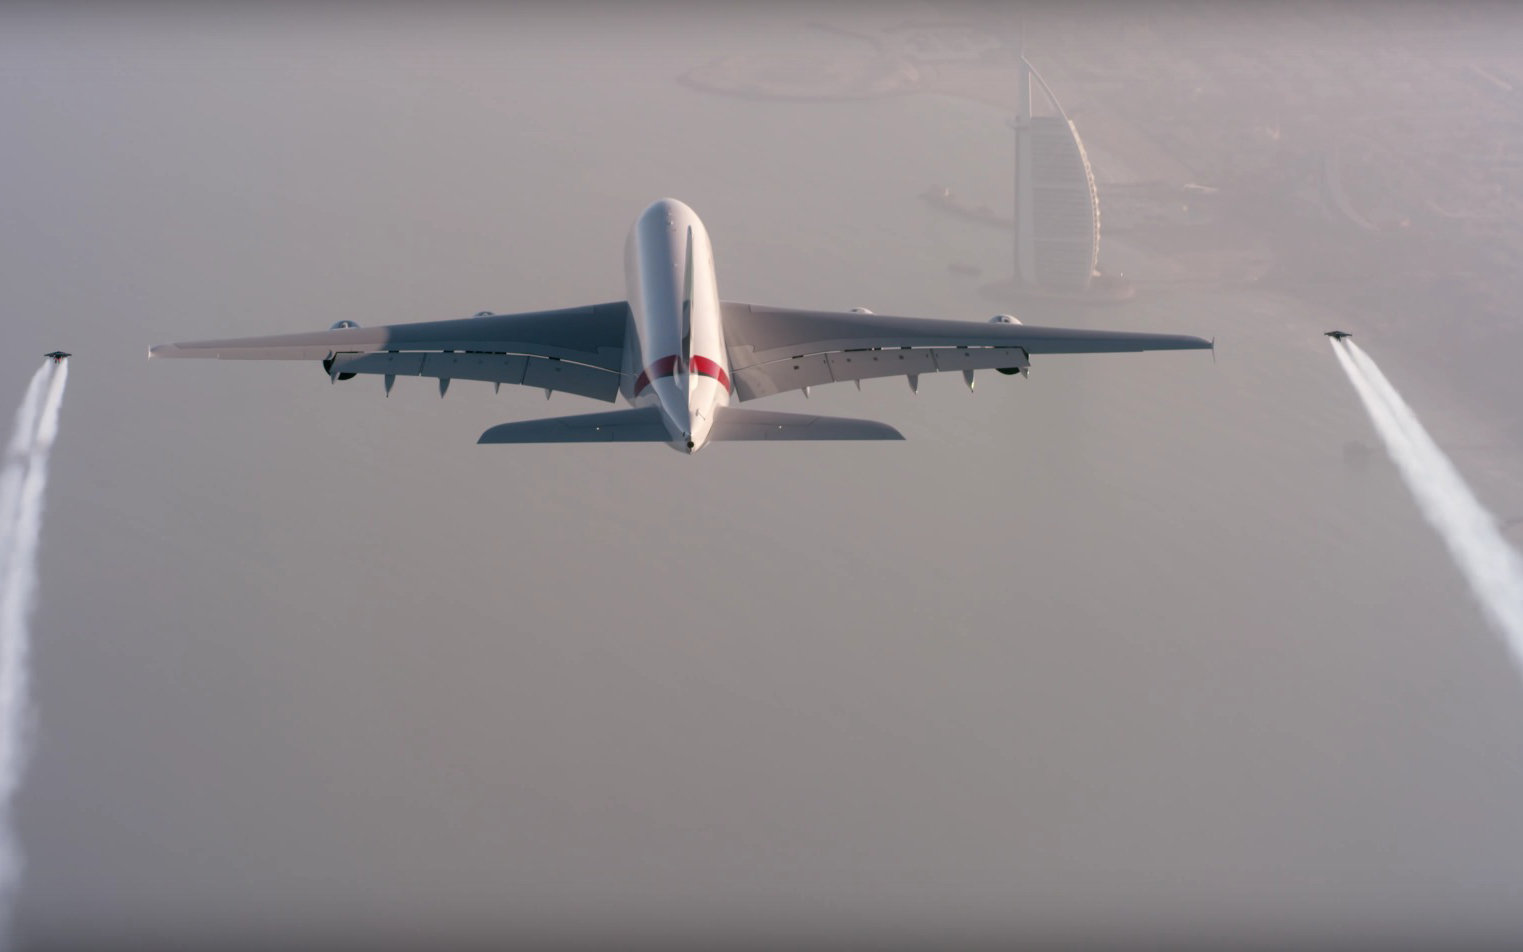 Watch Two Jetpackers Fly Next to an Emirates Airplane 4,000 Feet in the Air